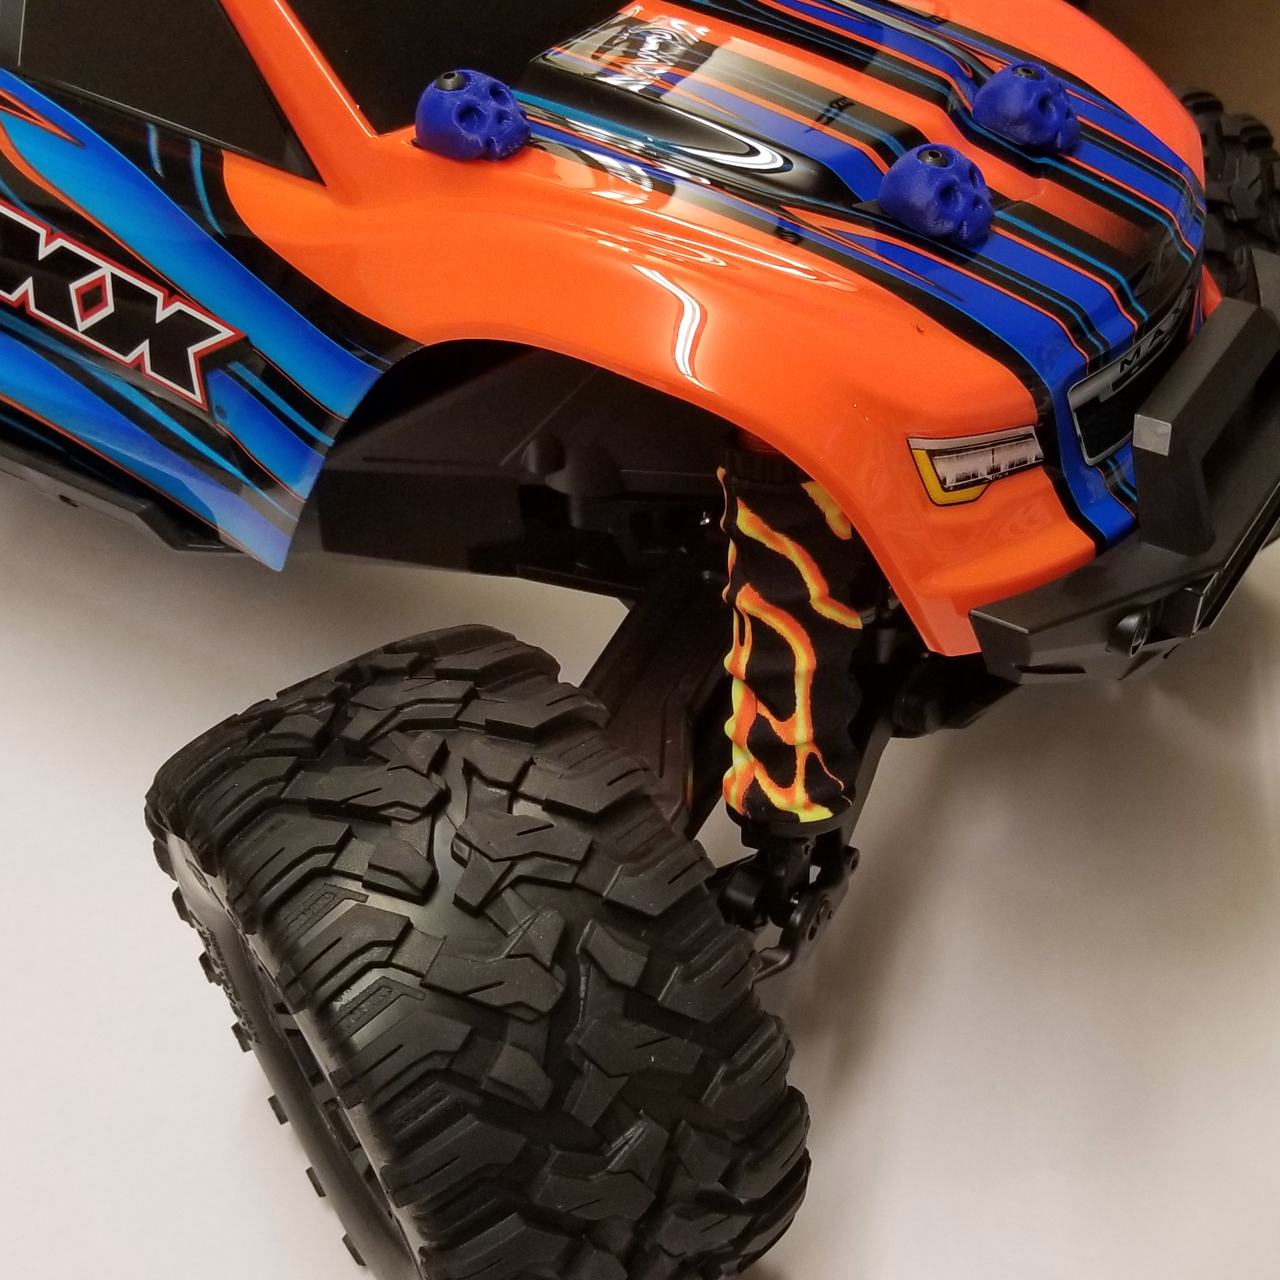 Lightning Orange/Yellow shock boots on our shop Traxxas MAXX truck!